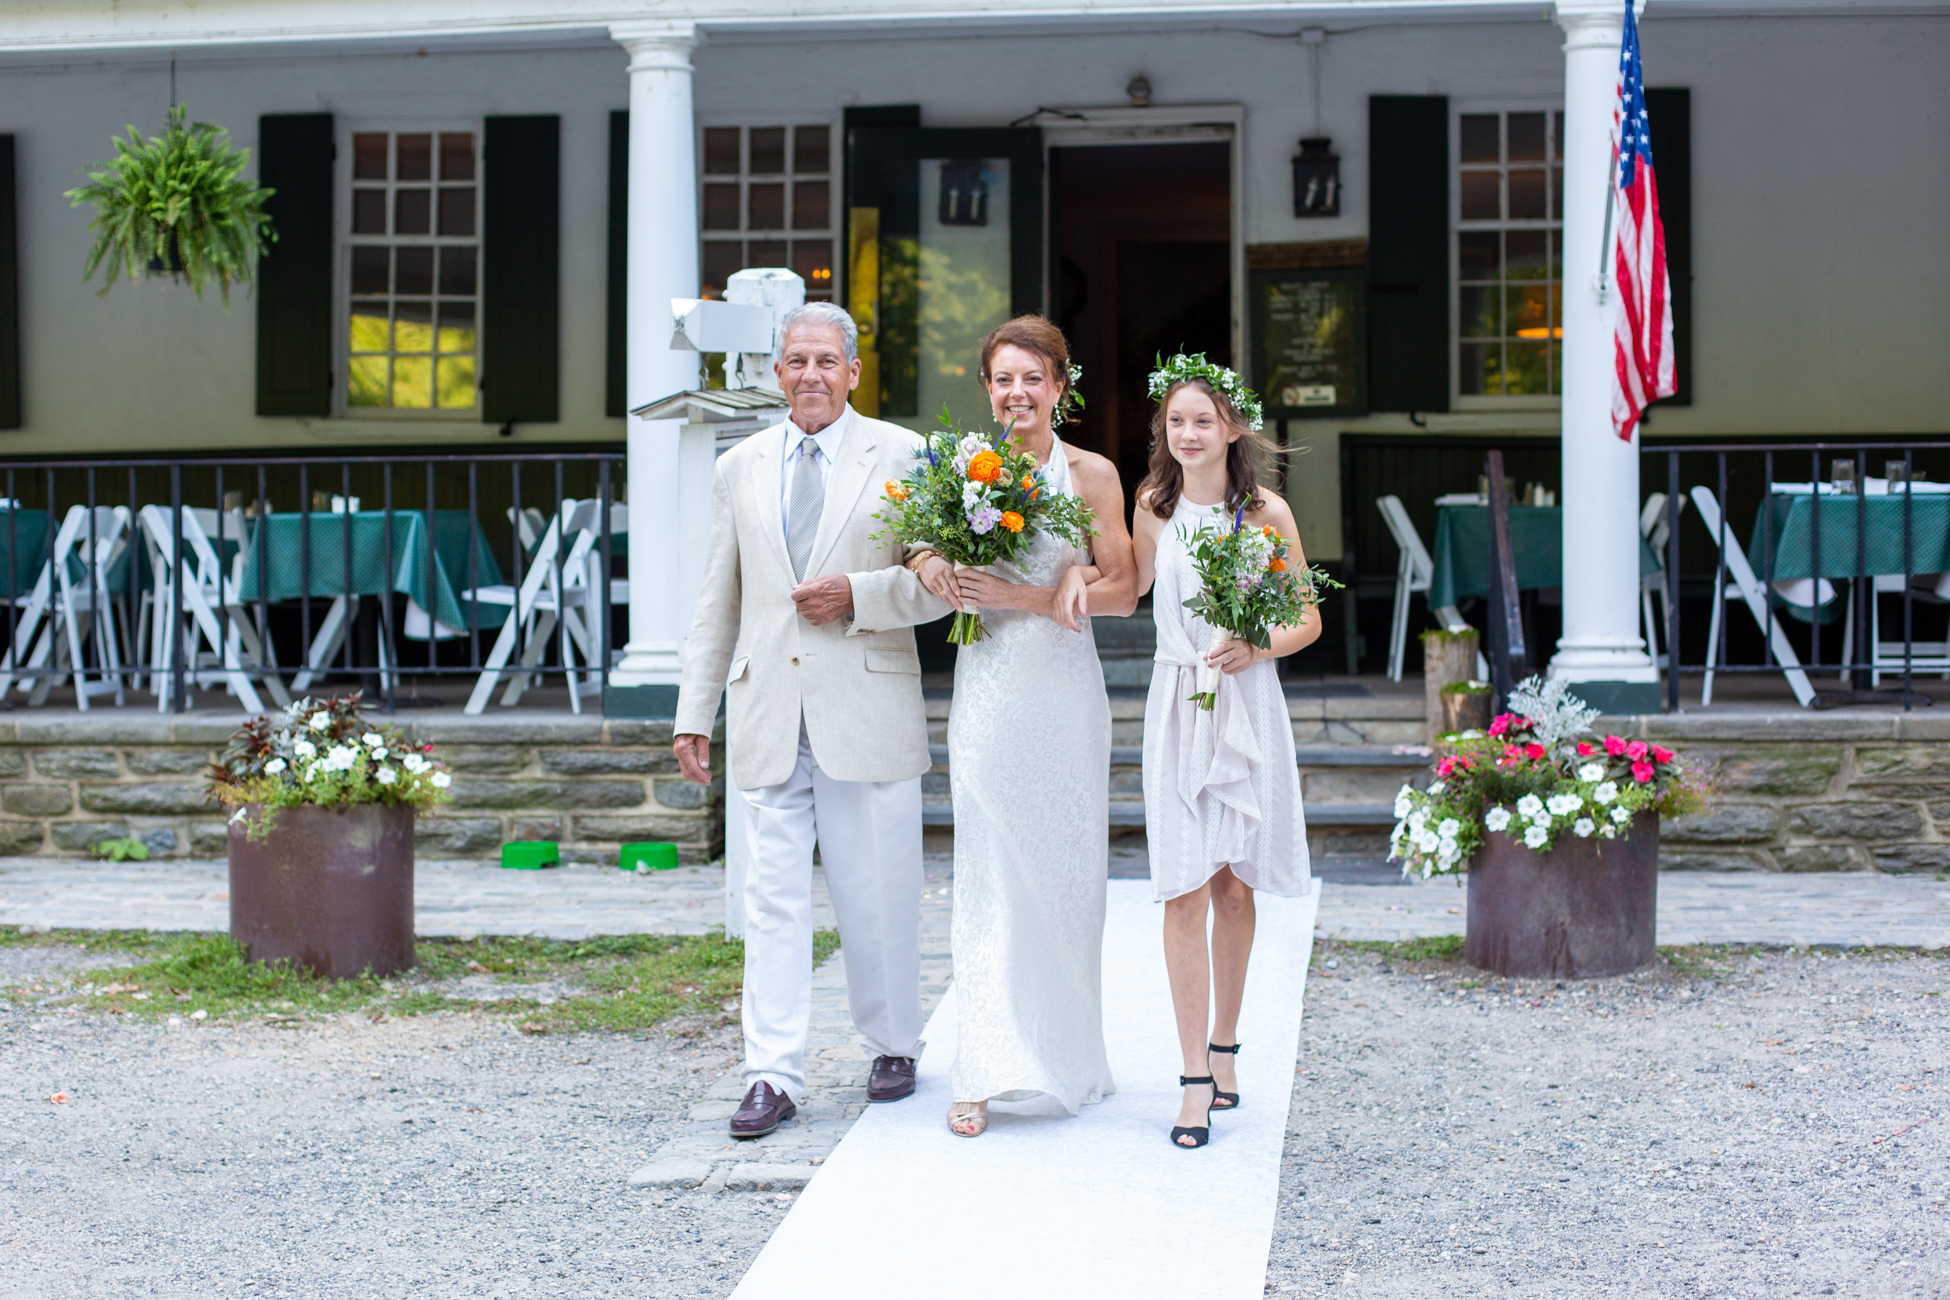 Melton-Kessler Wedding at Valley Green Inn by Avi Loren Fox LLC-18.jpg